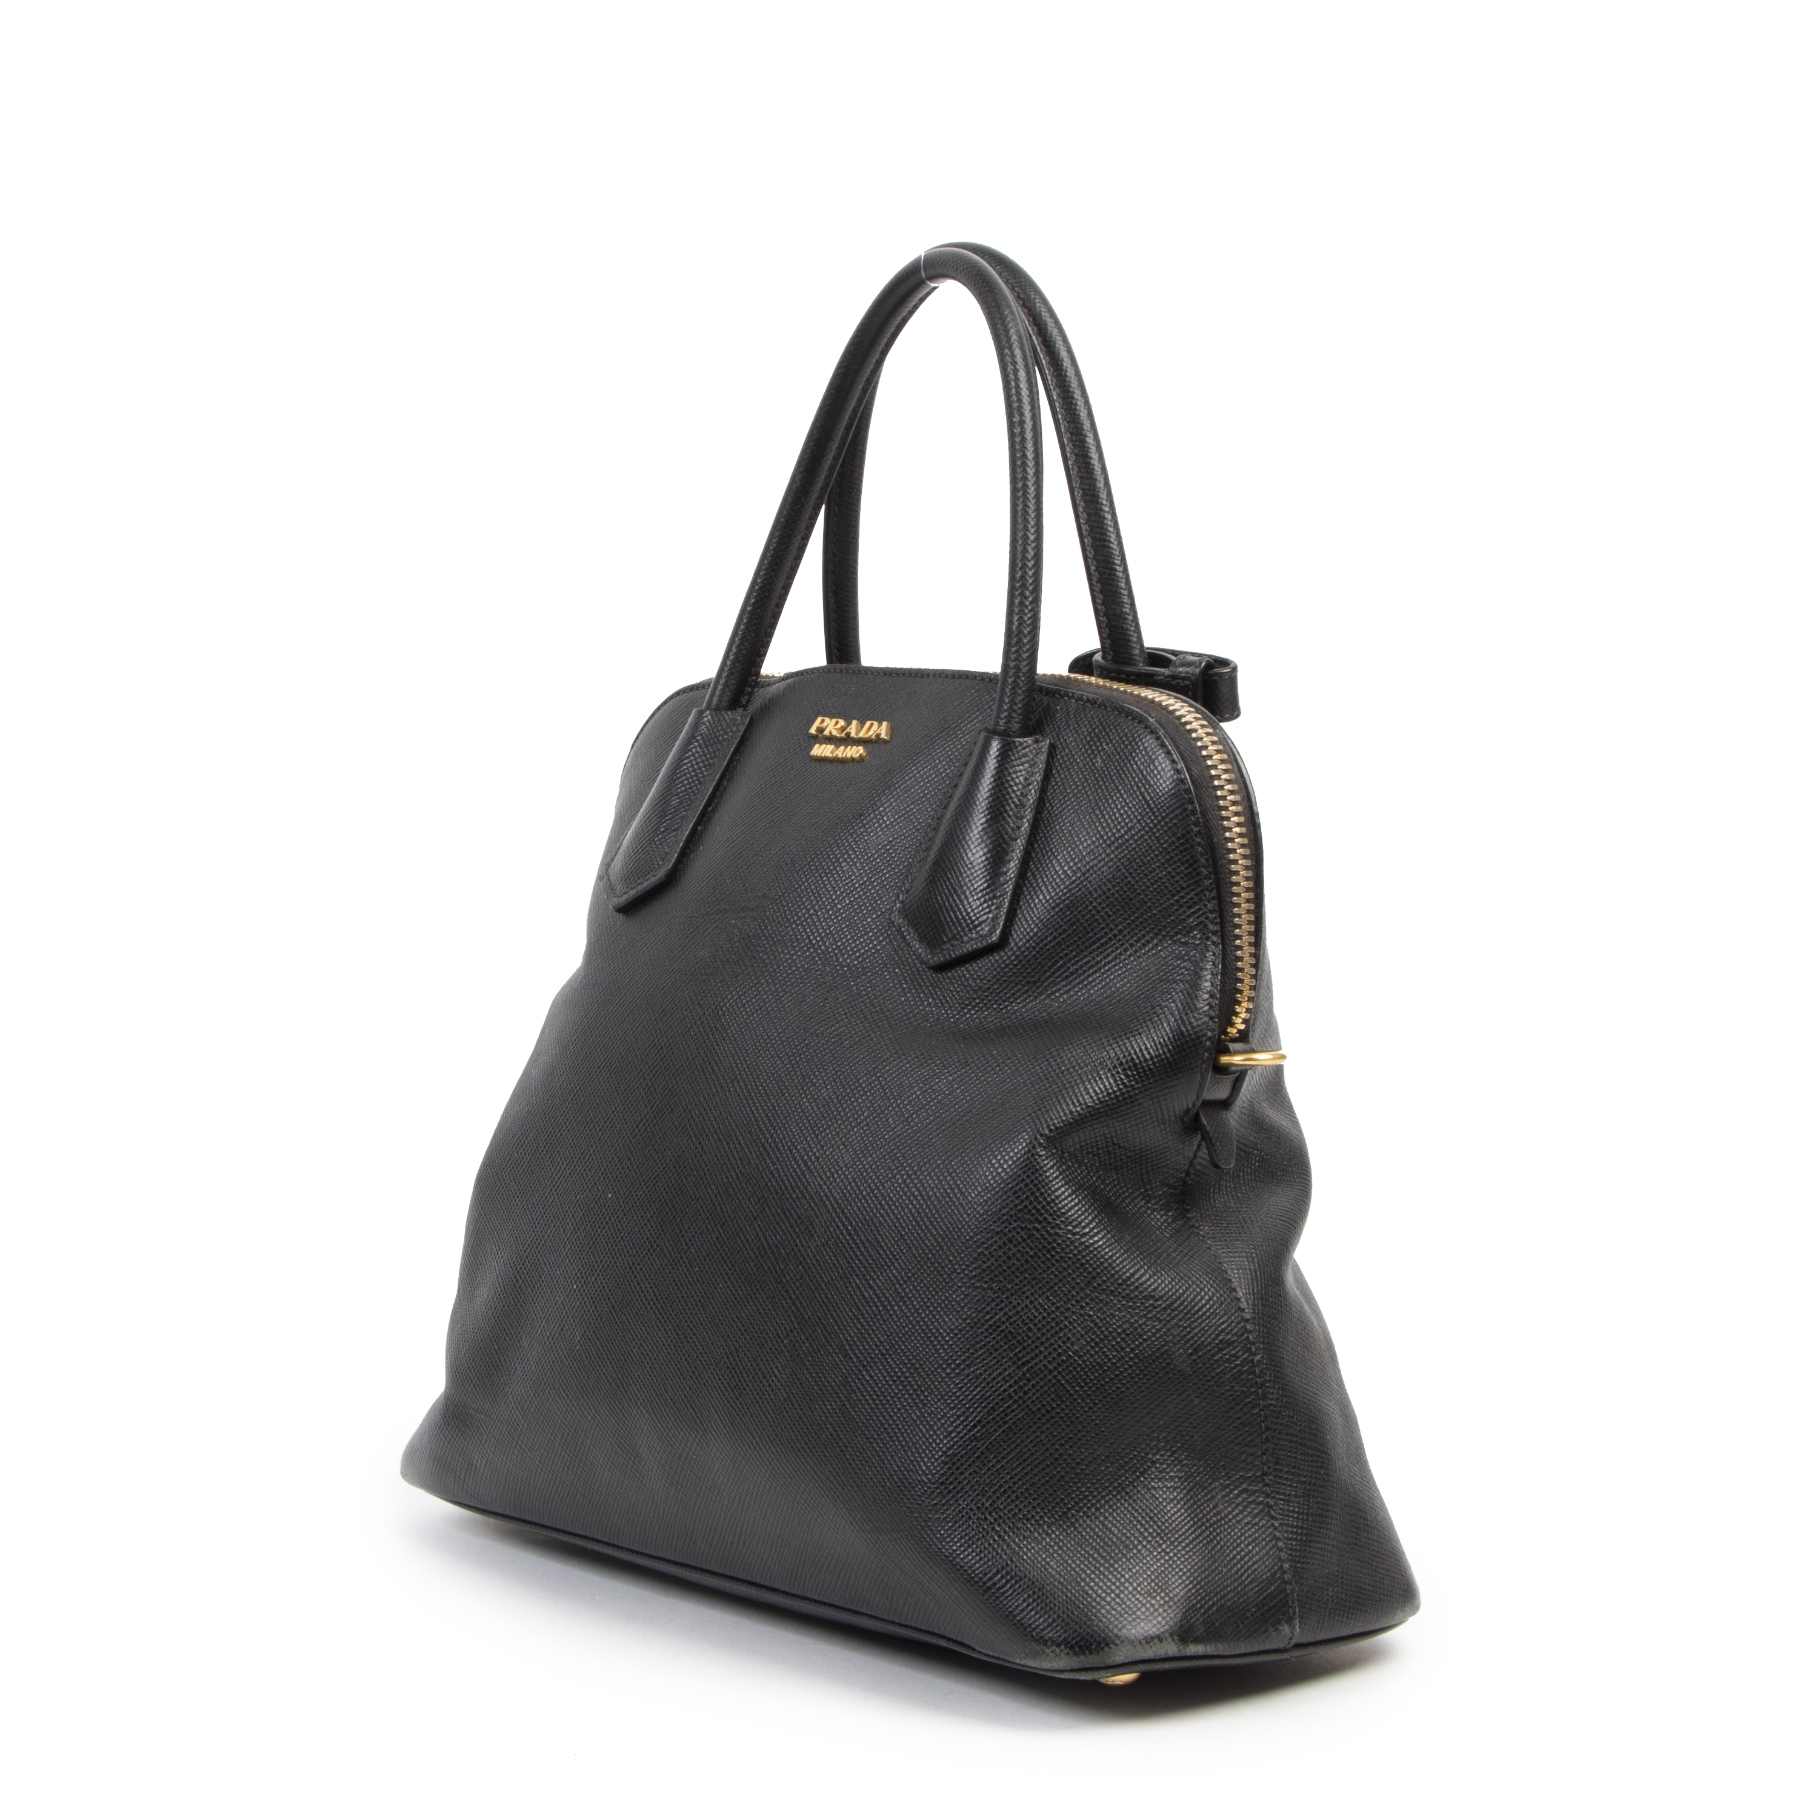 Buy authentic secondhand Prada Black Saffiano Leather Dome Top Handle Bags at the right price at LabelLOV vintage webshop. Safe and secure online shopping. Koop authentieke tweedehands Prada Black Saffiano